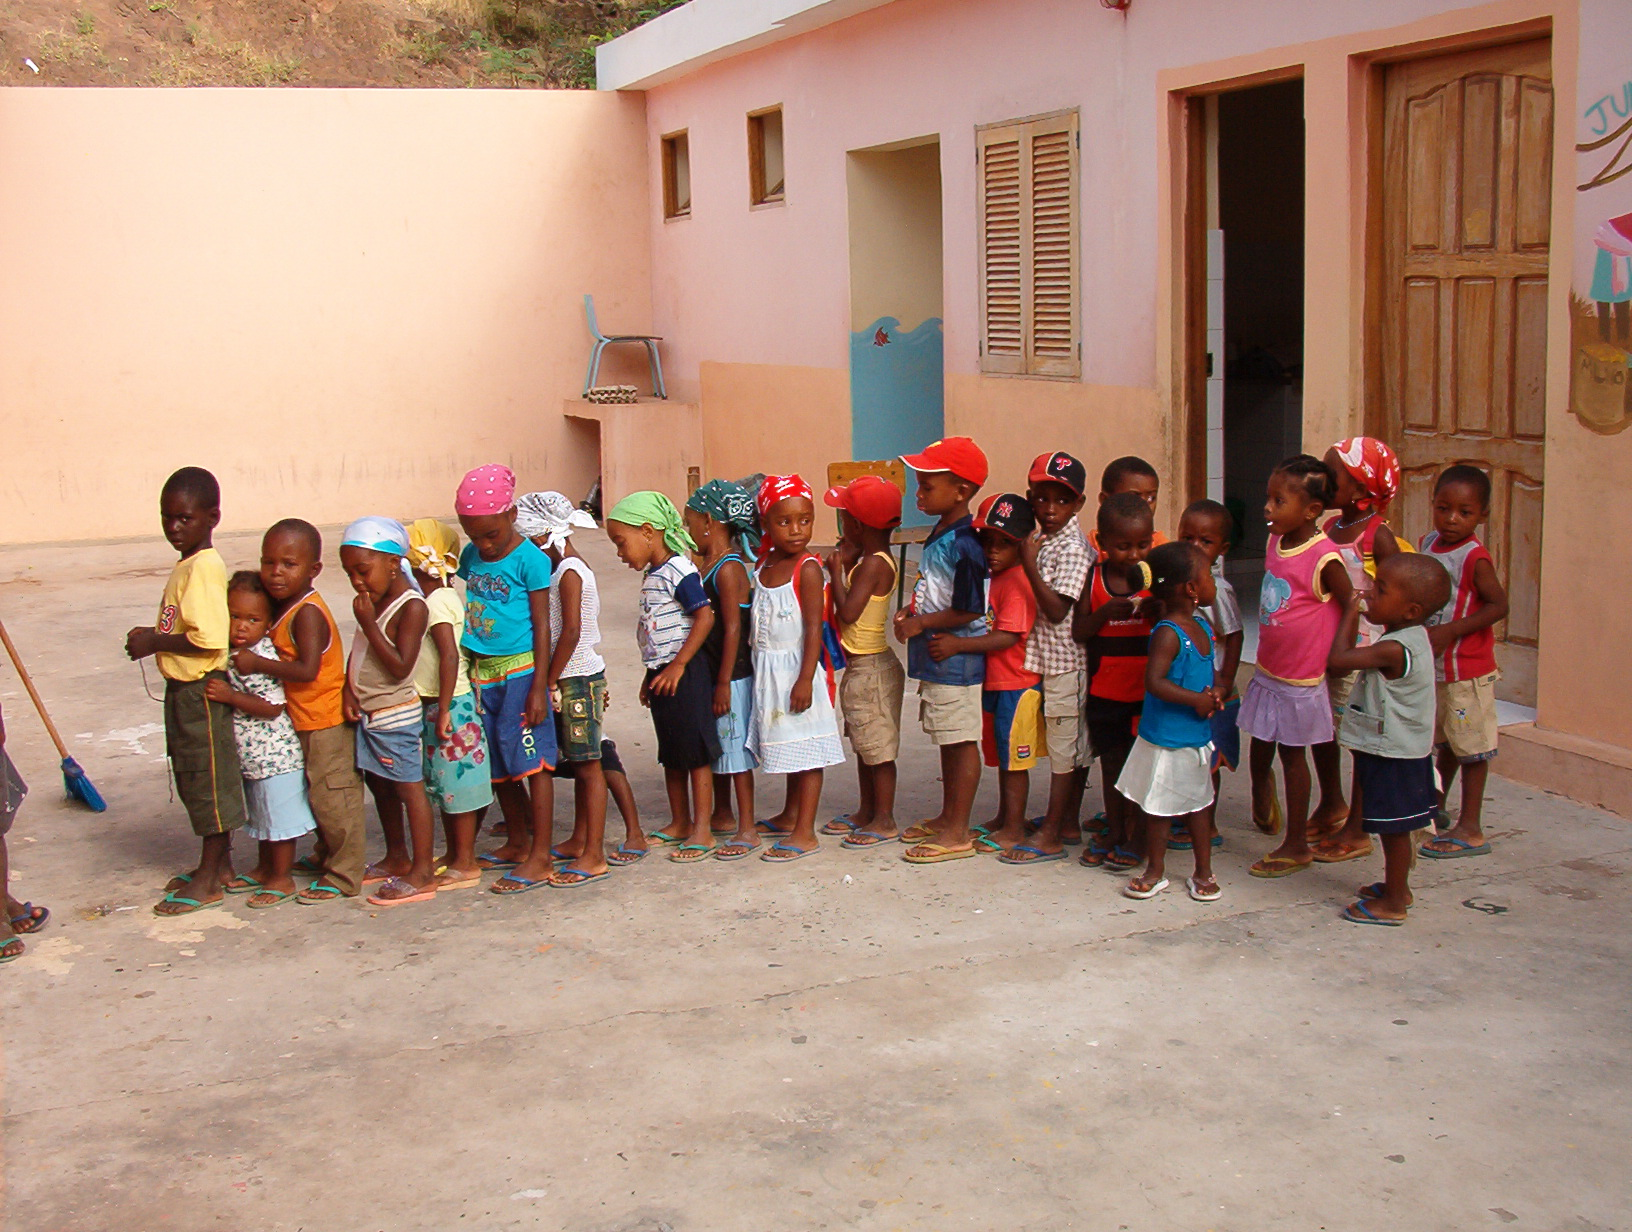 Children lining up for class in Cape Verde - by DuncanCV